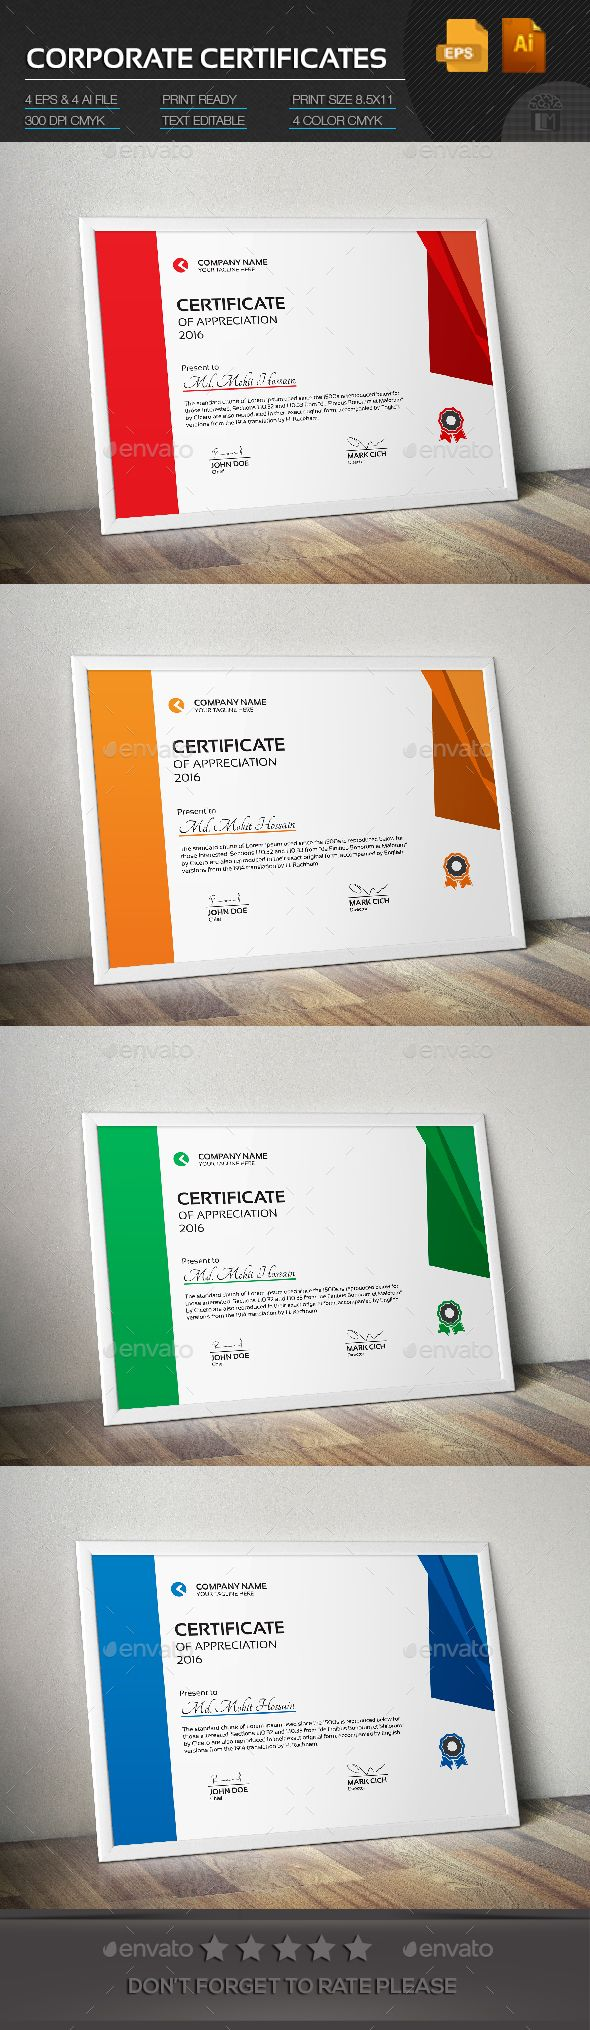 Corporate Certificate - Certificate Template Vector EPS, Vector AI. Download here: http://graphicriver.net/item/corporate-certificate/14728866?s_rank=57&ref=yinkira